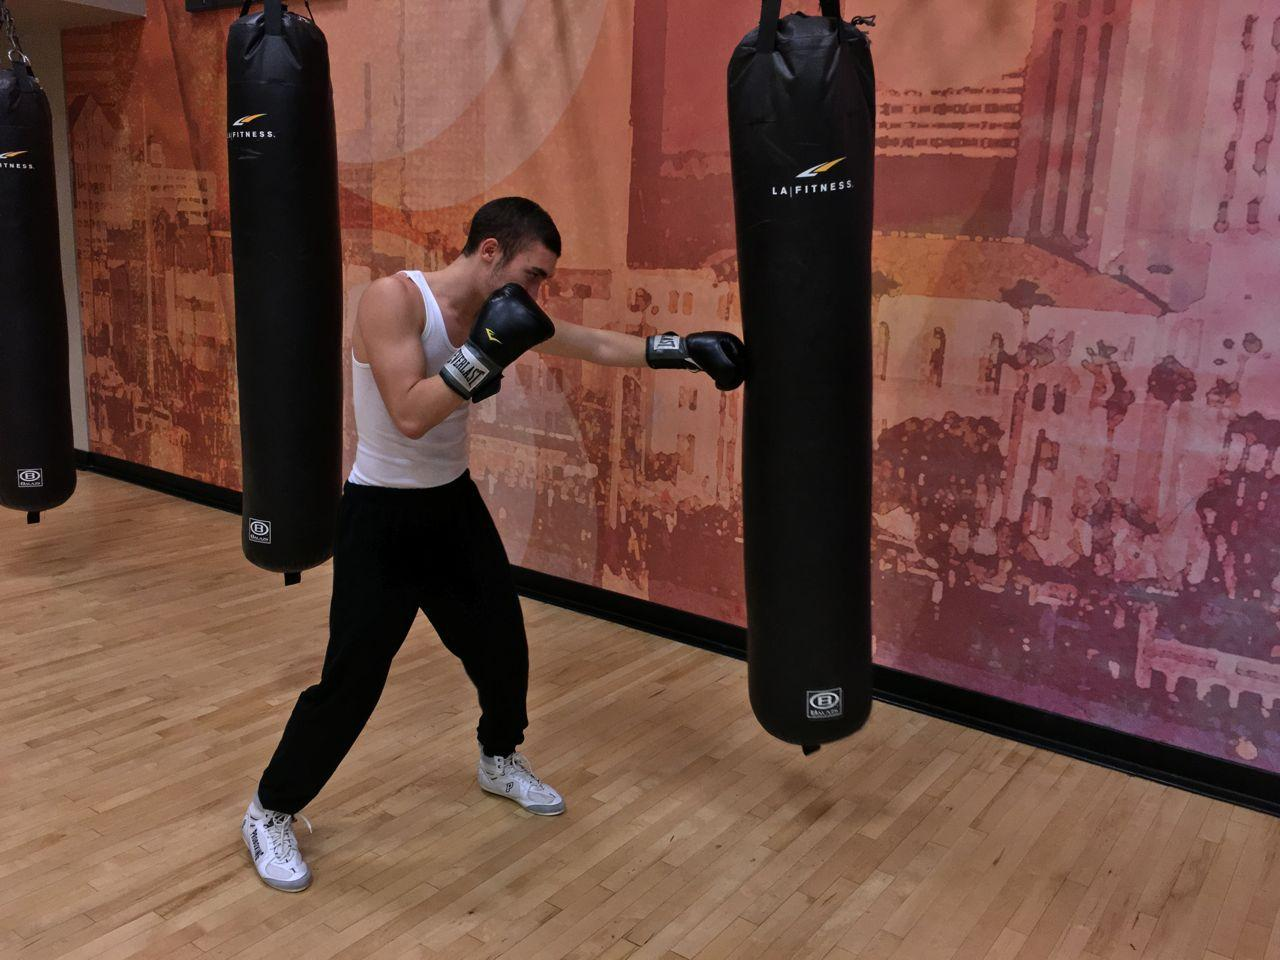 Senior Gera Pimenov practices his punches at his local LA fitness gym. Pimenov has been boxing for since March.